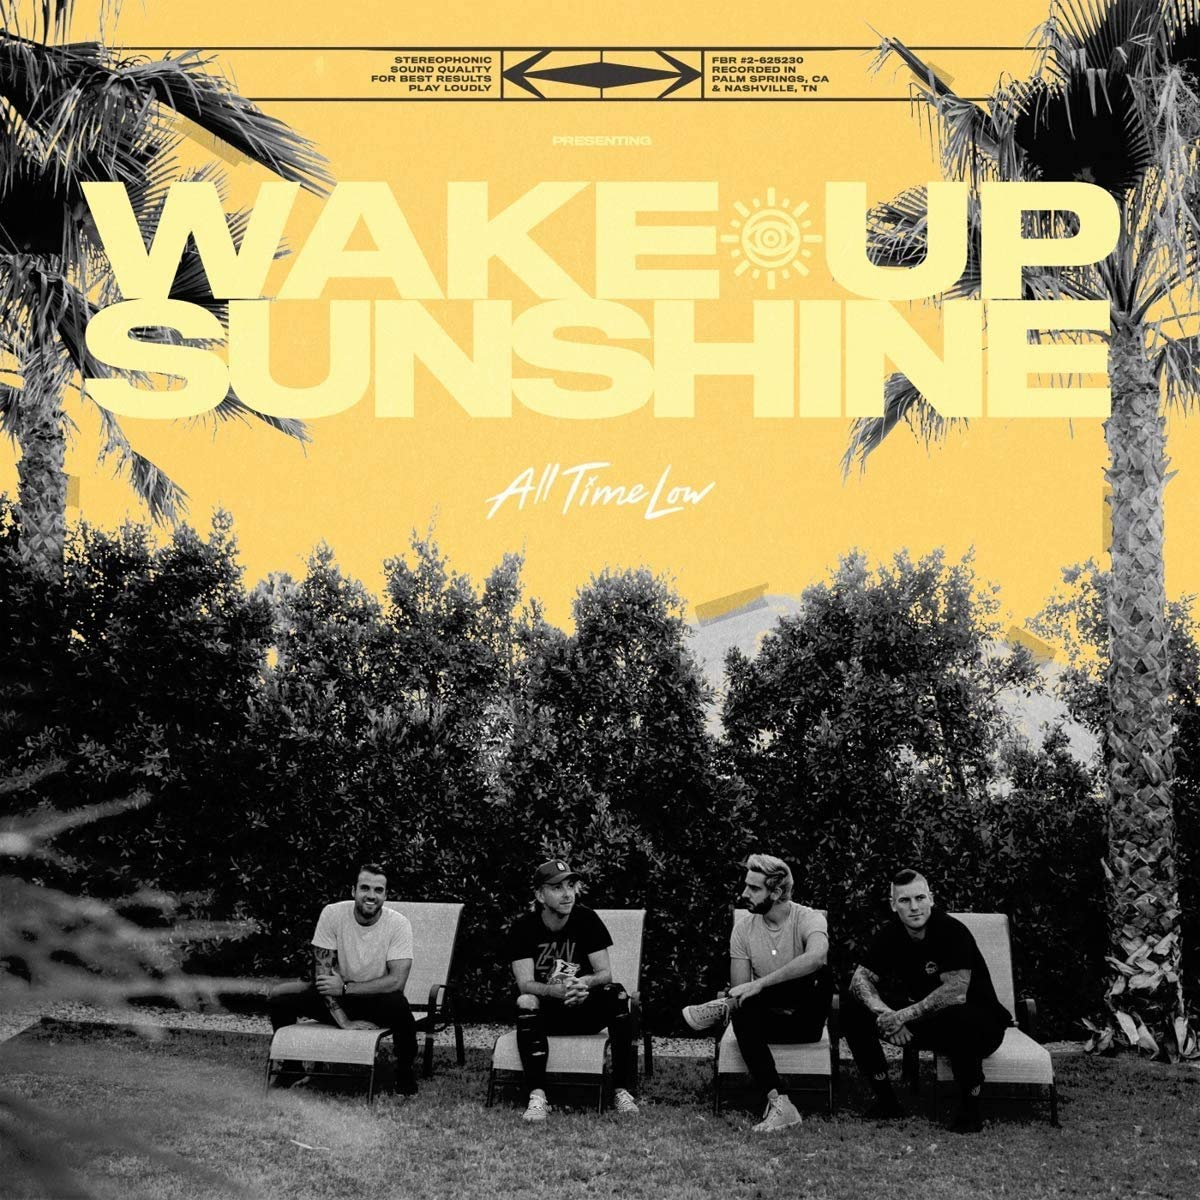 All Time Low - Wake Up Sunshine : All Time Low, All Time Low: Amazon.es:  CDs y vinilos}